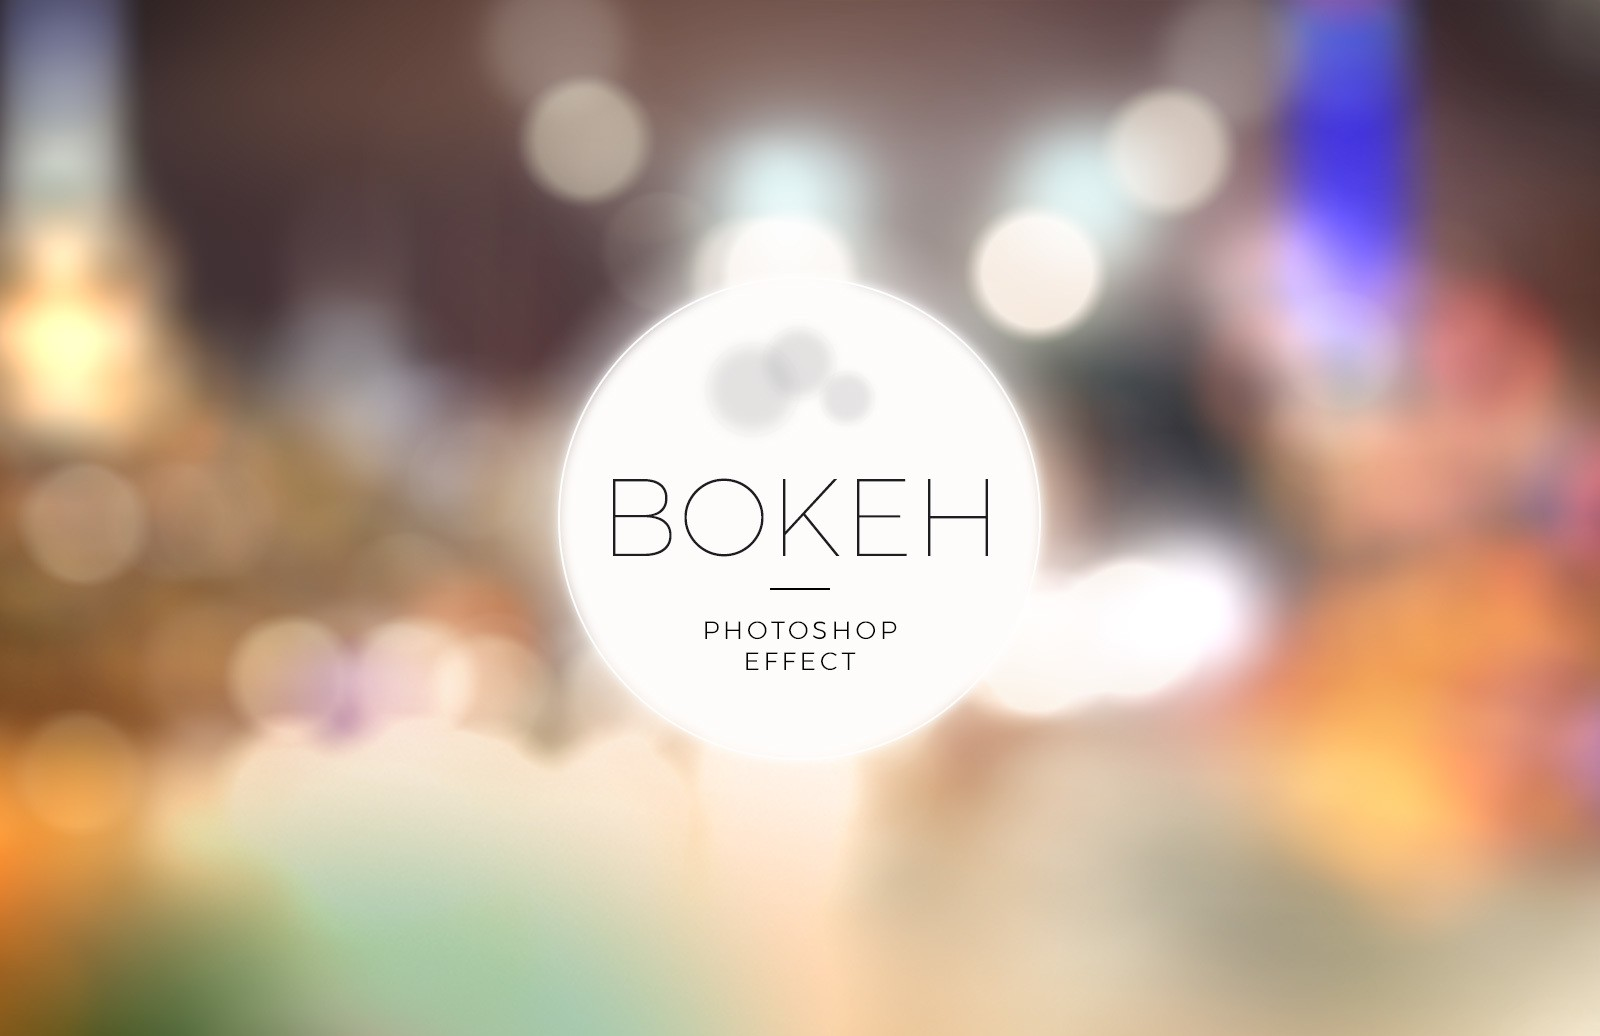 Bokeh Photoshop Effect